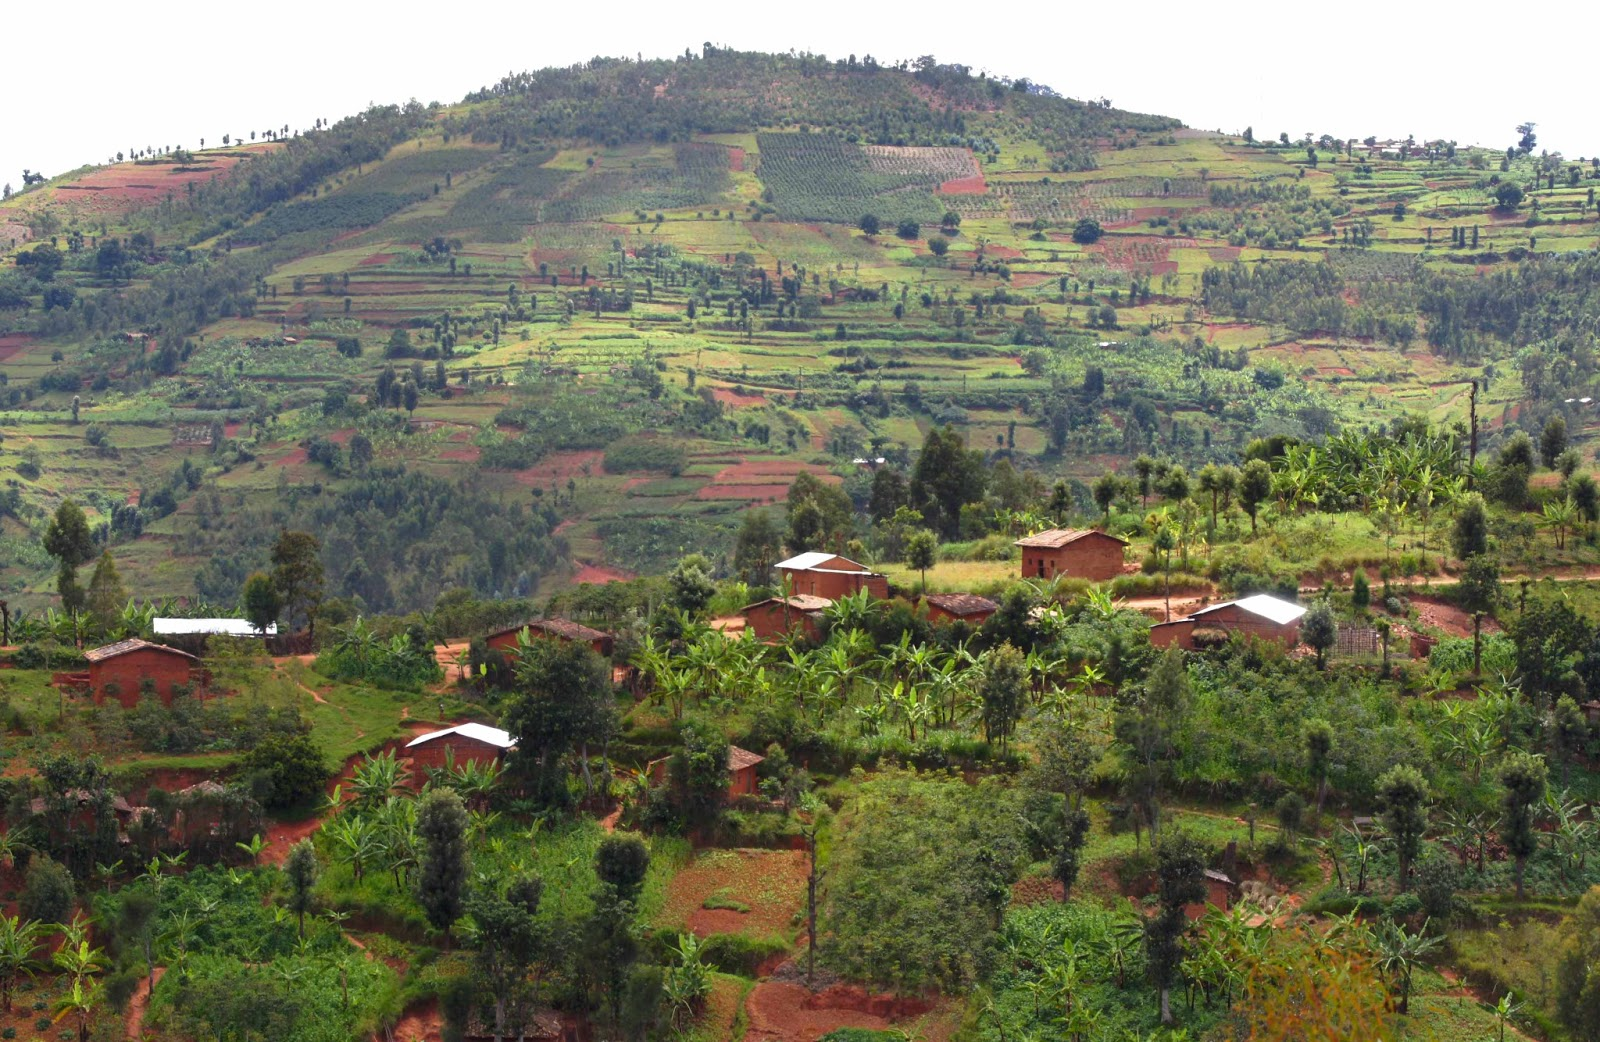 burundi - photo #38